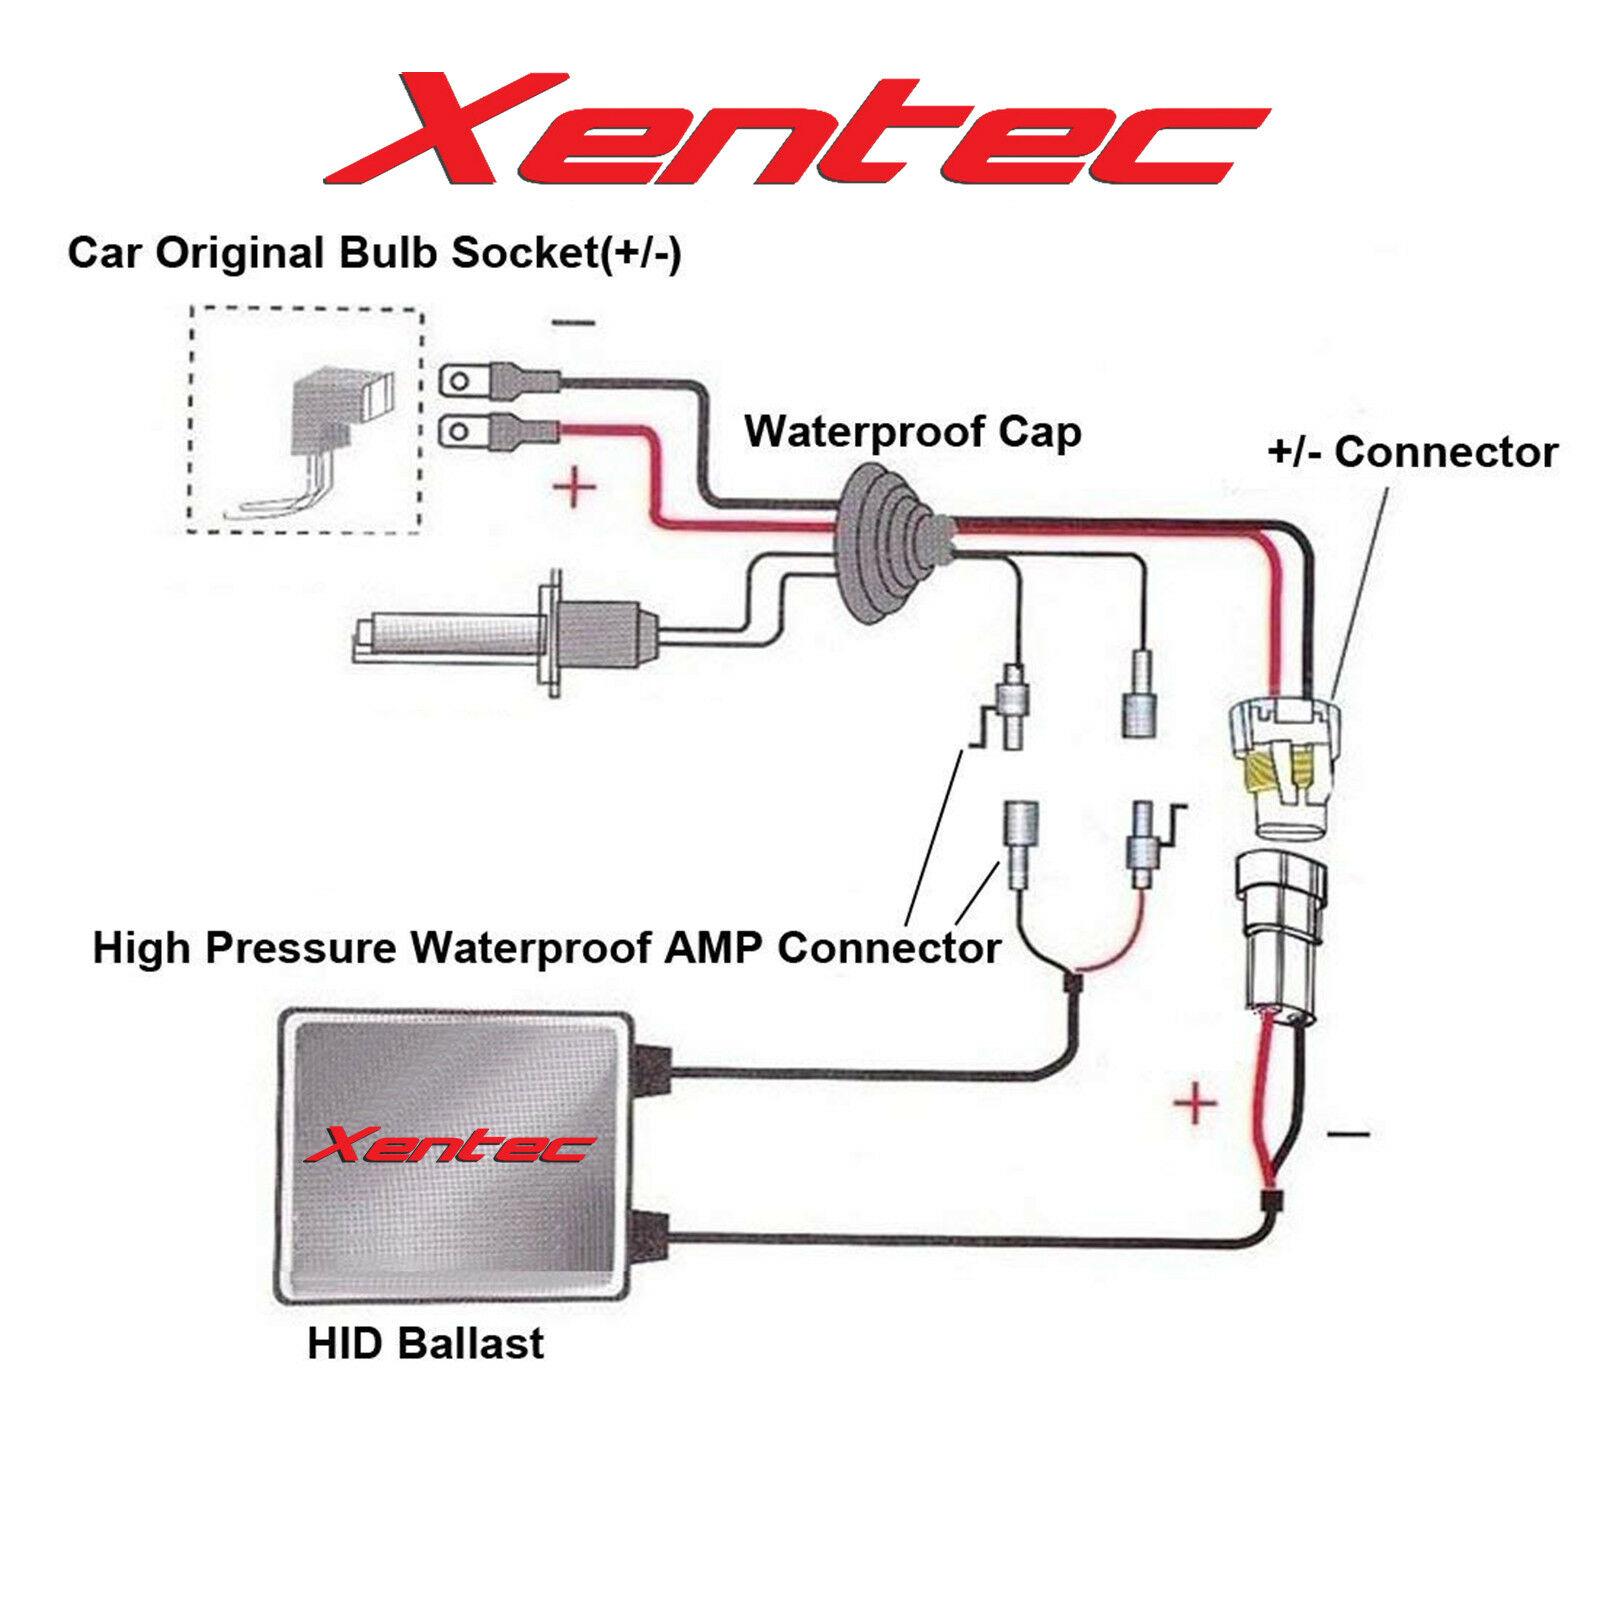 hight resolution of xentecxenon lights 55w slim hid kit for scion fr s ia im iq tc xa xb xd ebay